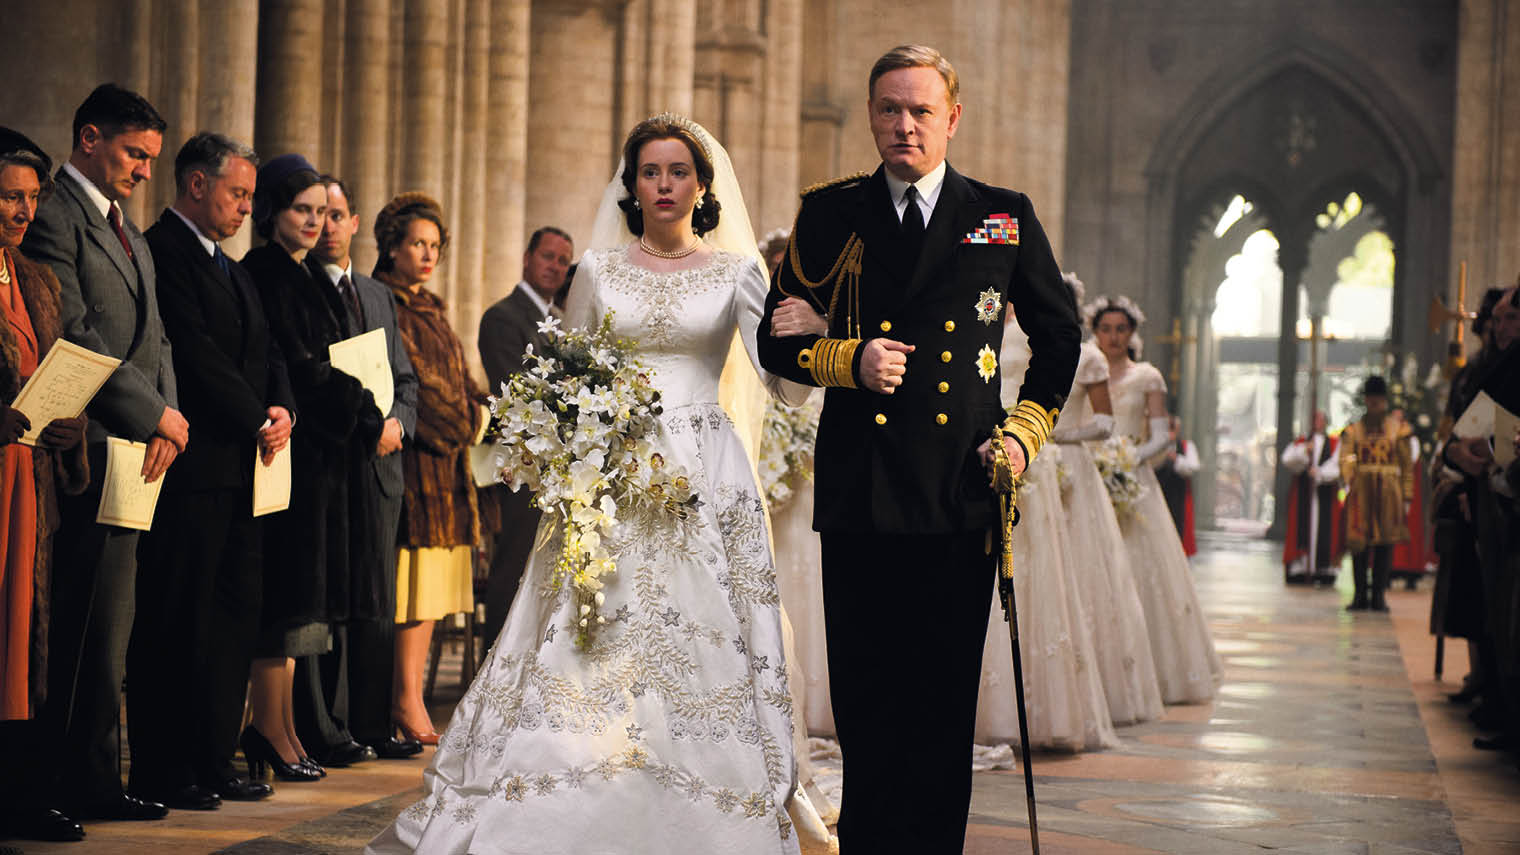 Netflix series The Crown cost a reported $10 million an episode to make